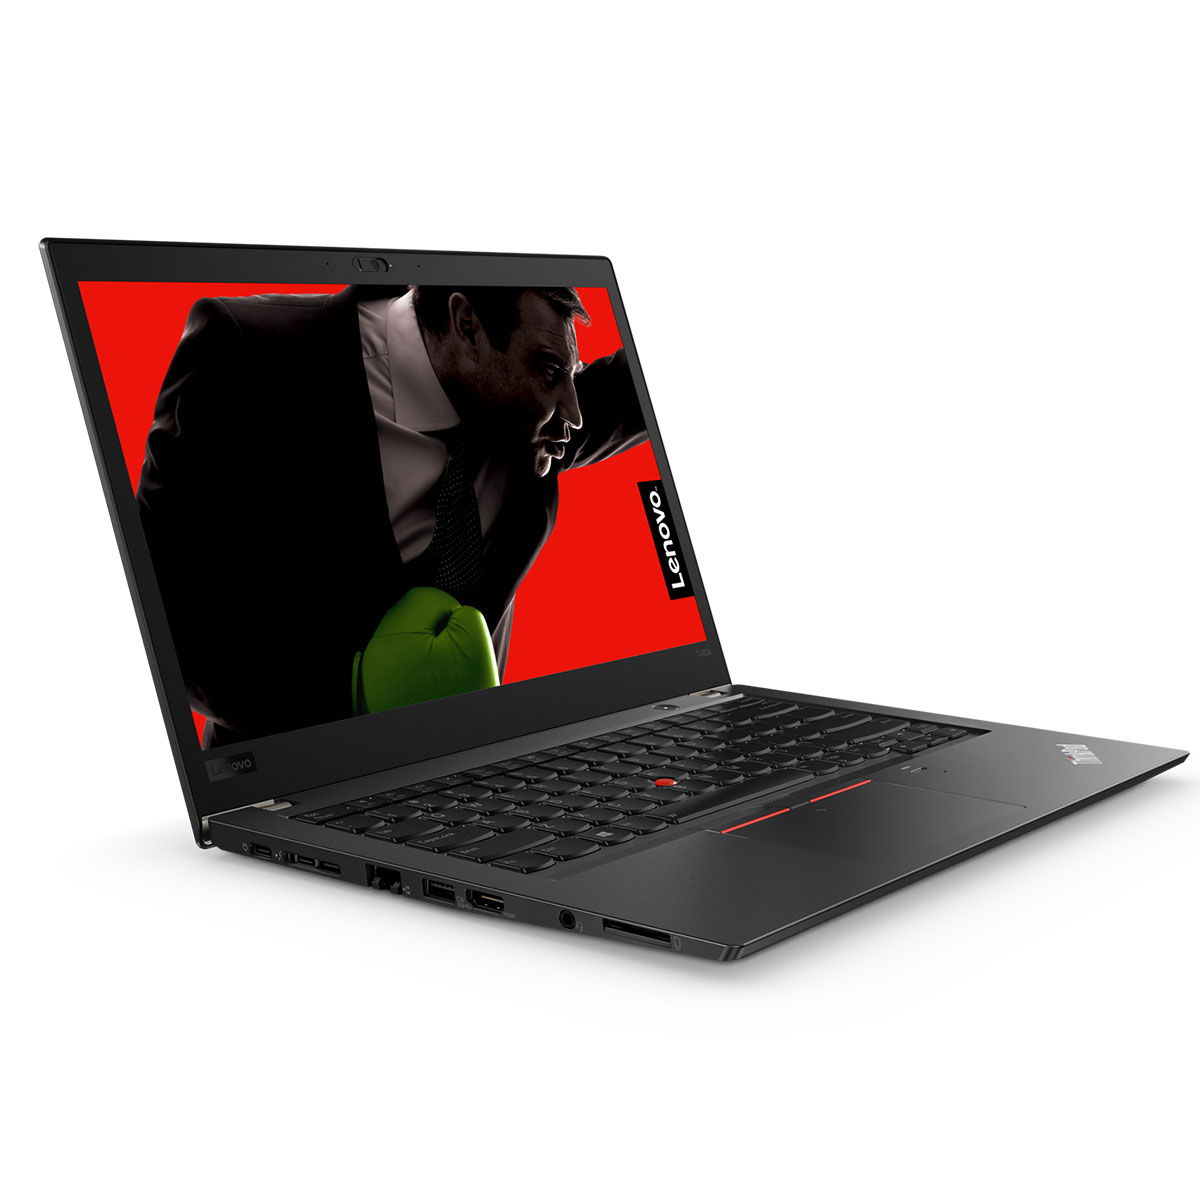 Lenovo_ThinkPad_T480s